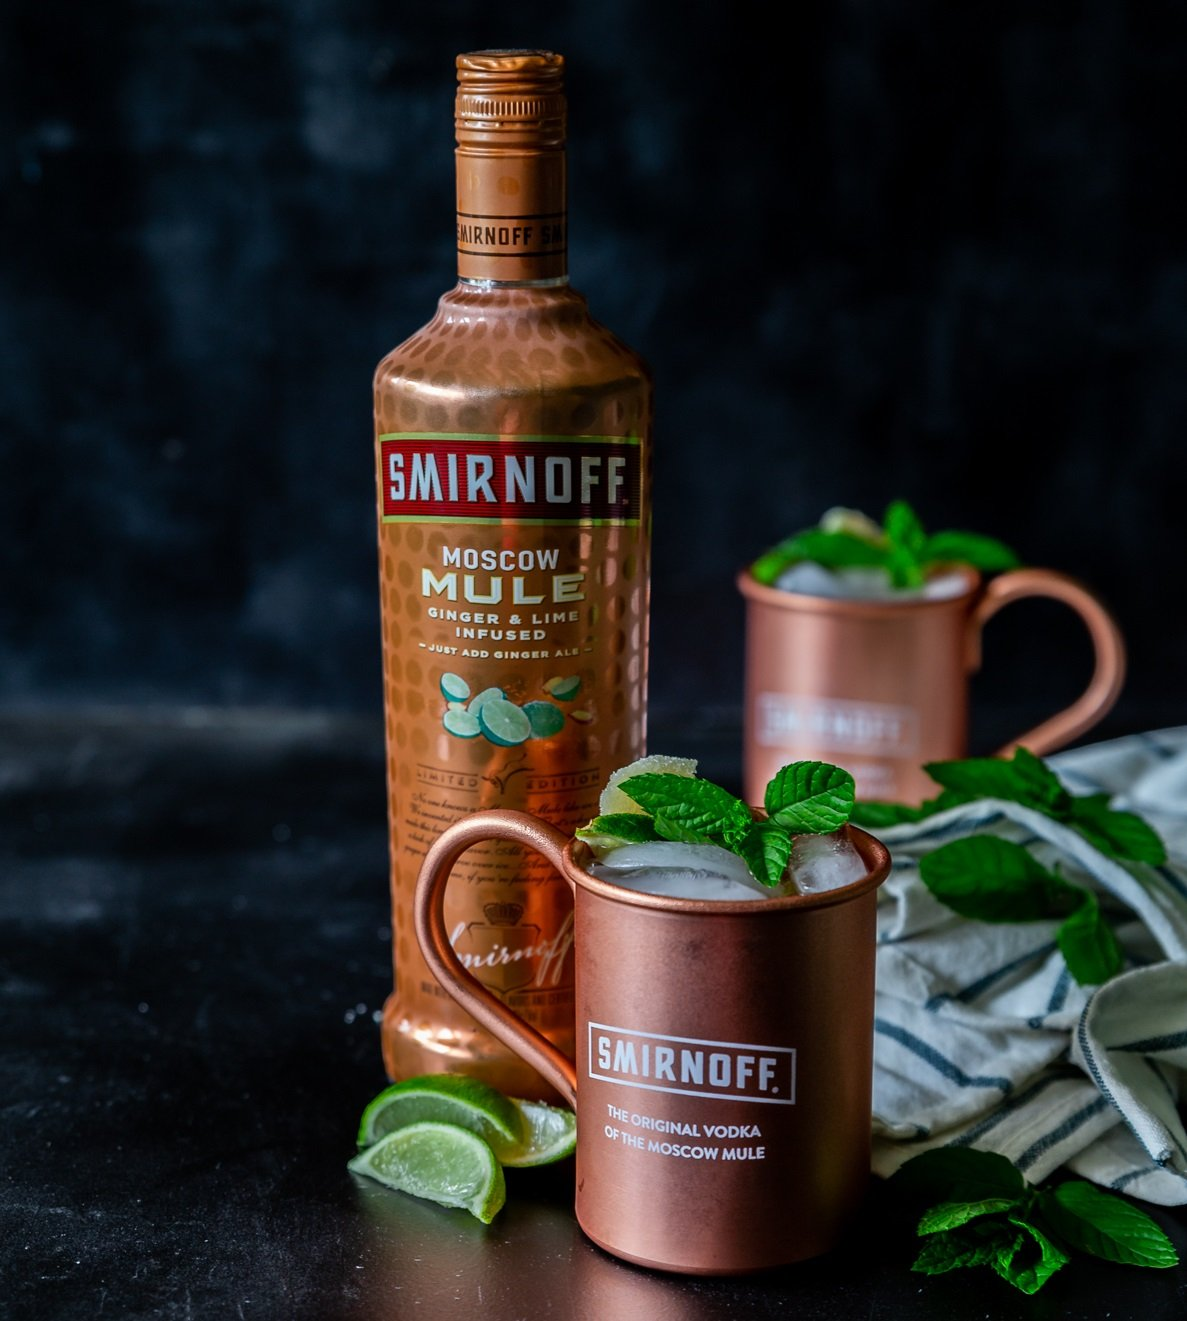 Smirnoff Moscow Mule Ginger & Lime Infused Vodka